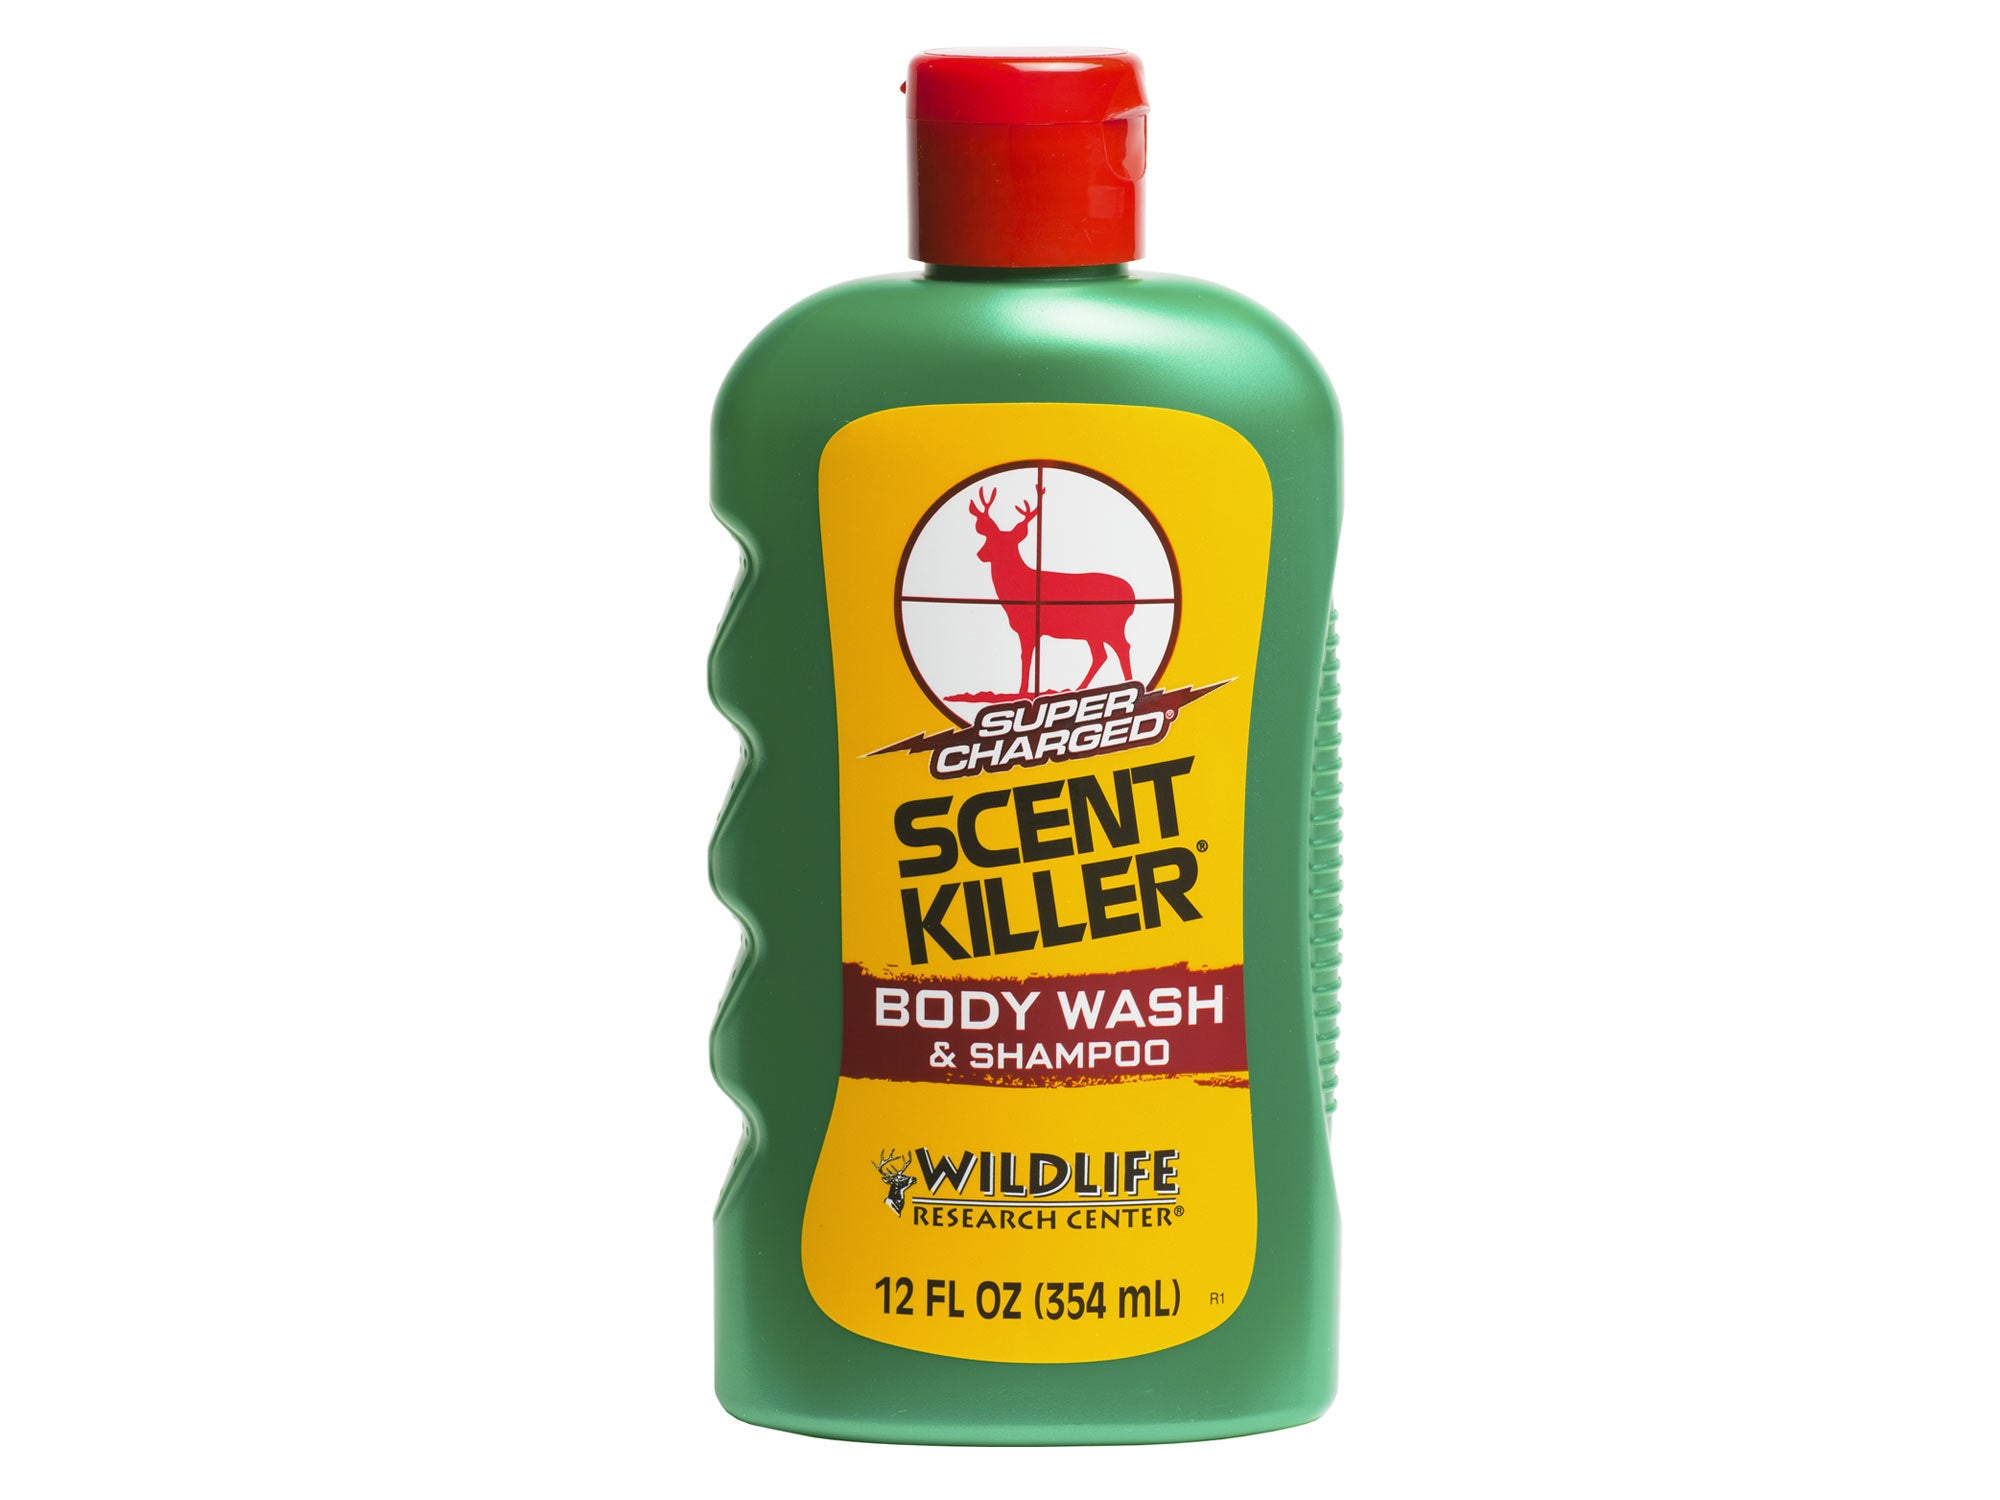 Unscented body wash by Scent Killer